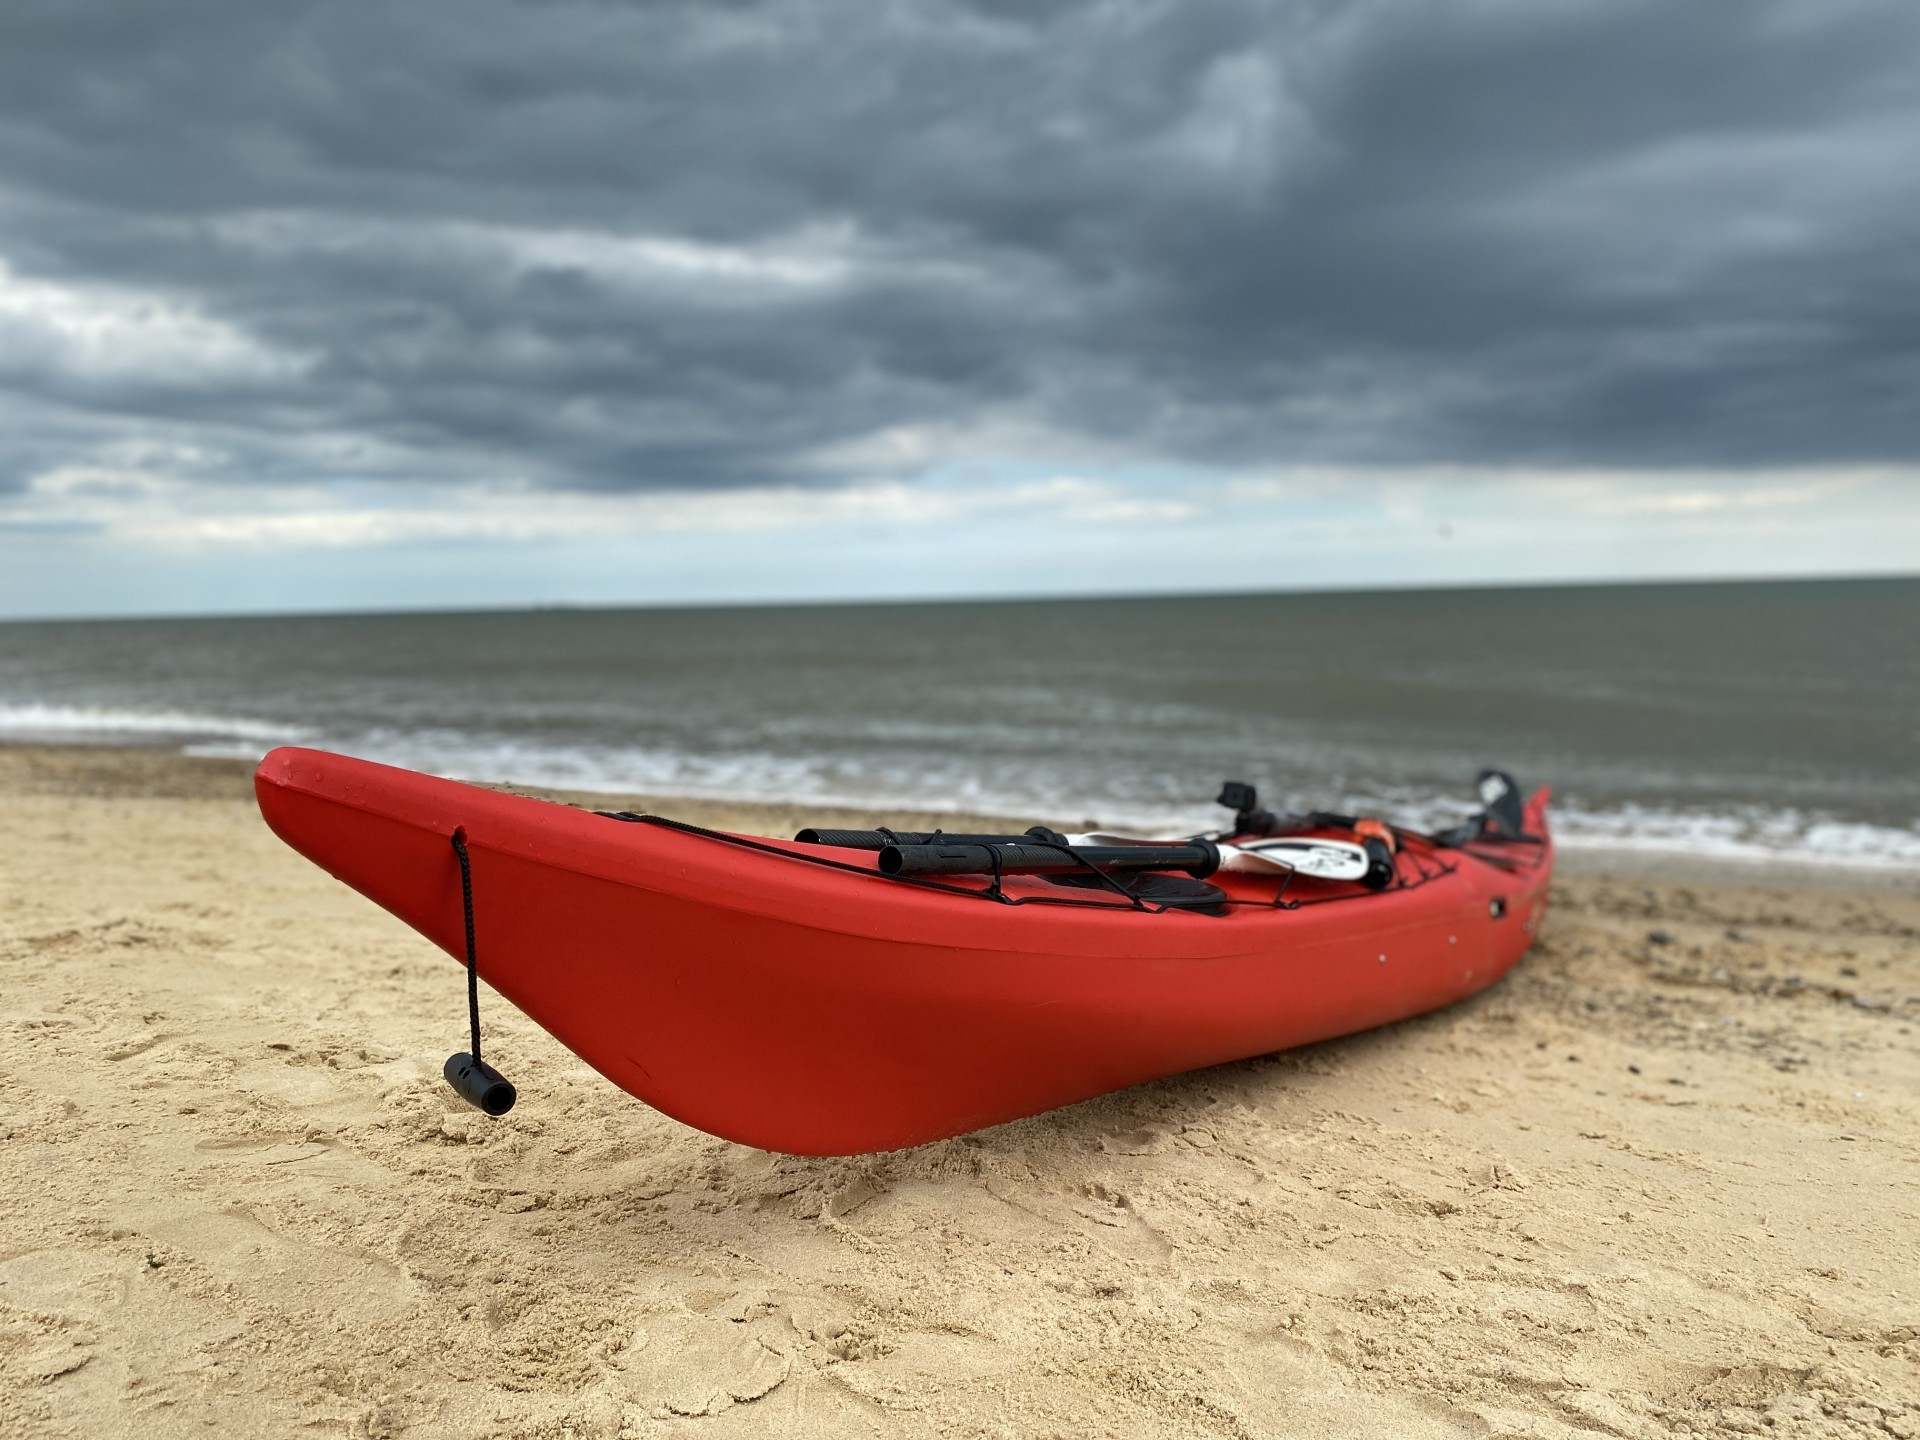 Red NDK roto-moulded sea kayak on a sandy beach